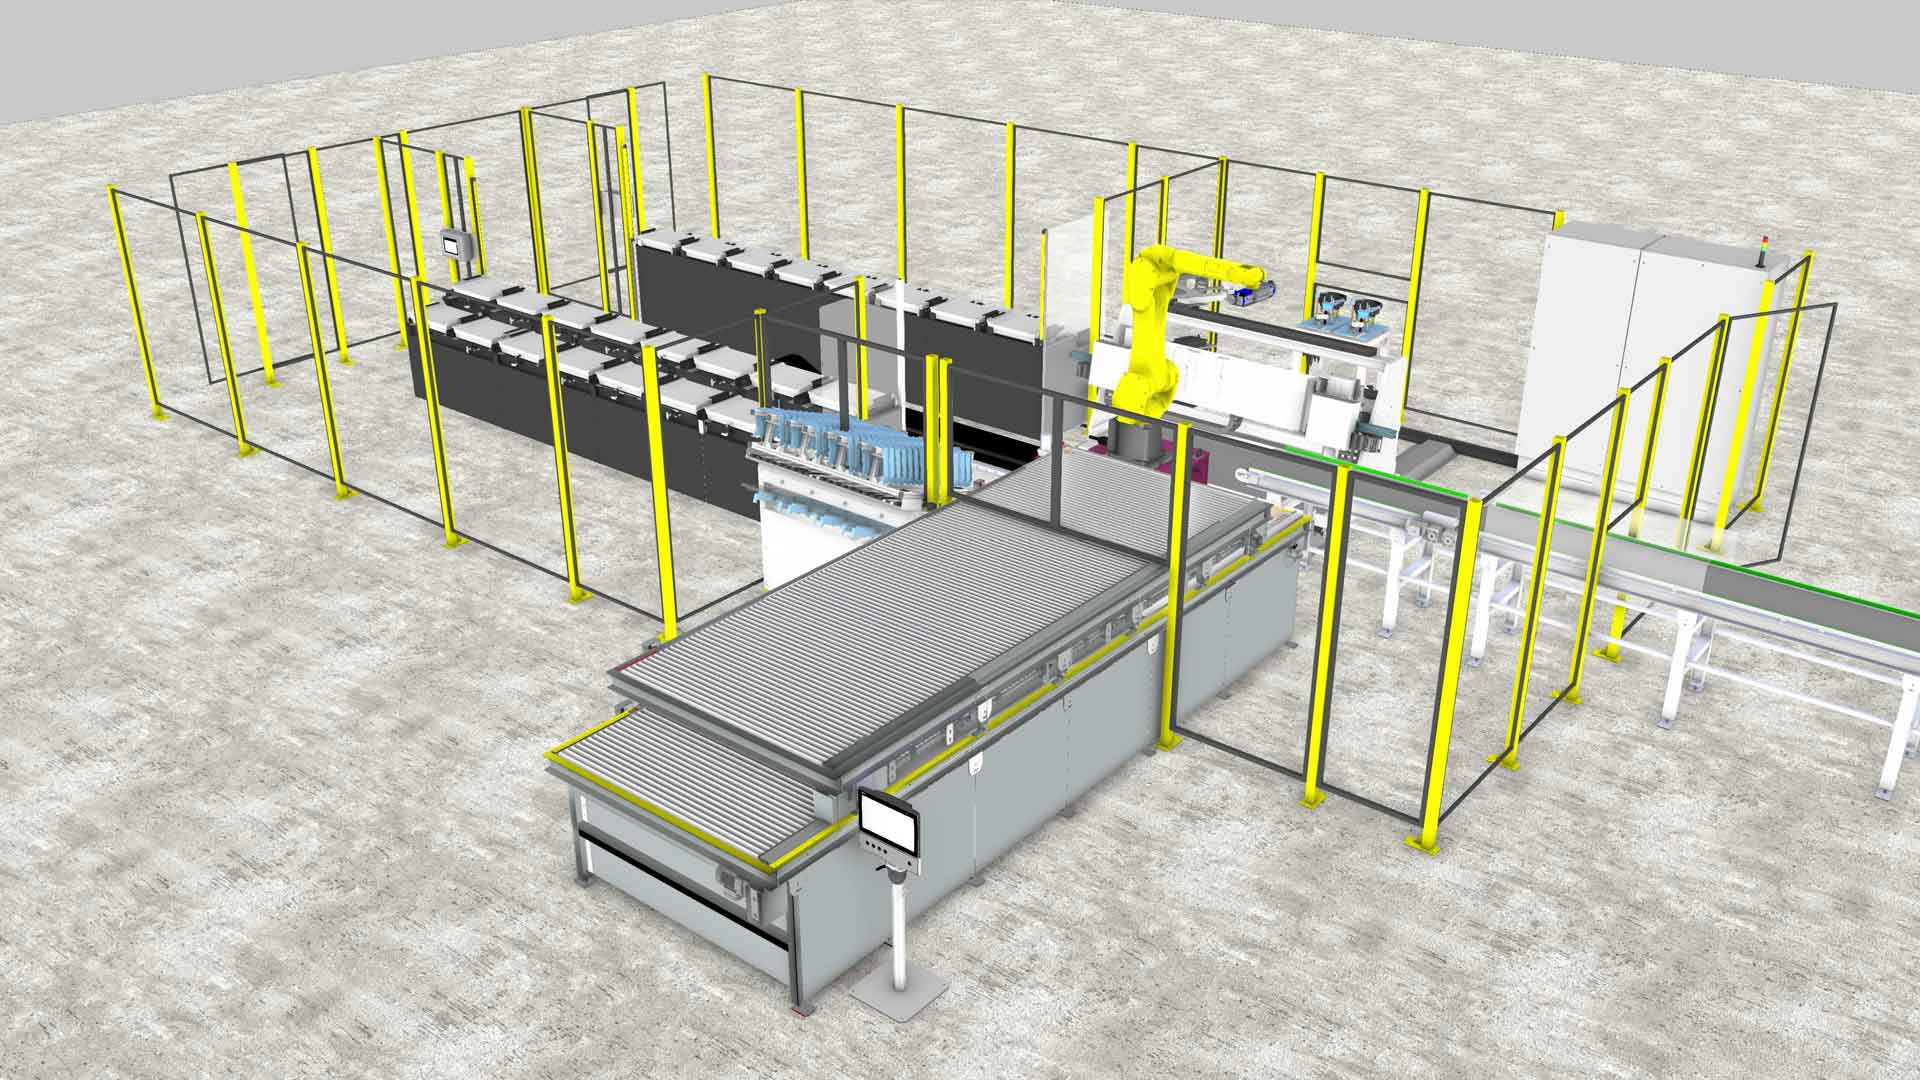 a rendering of a robot working at a manufacturing line